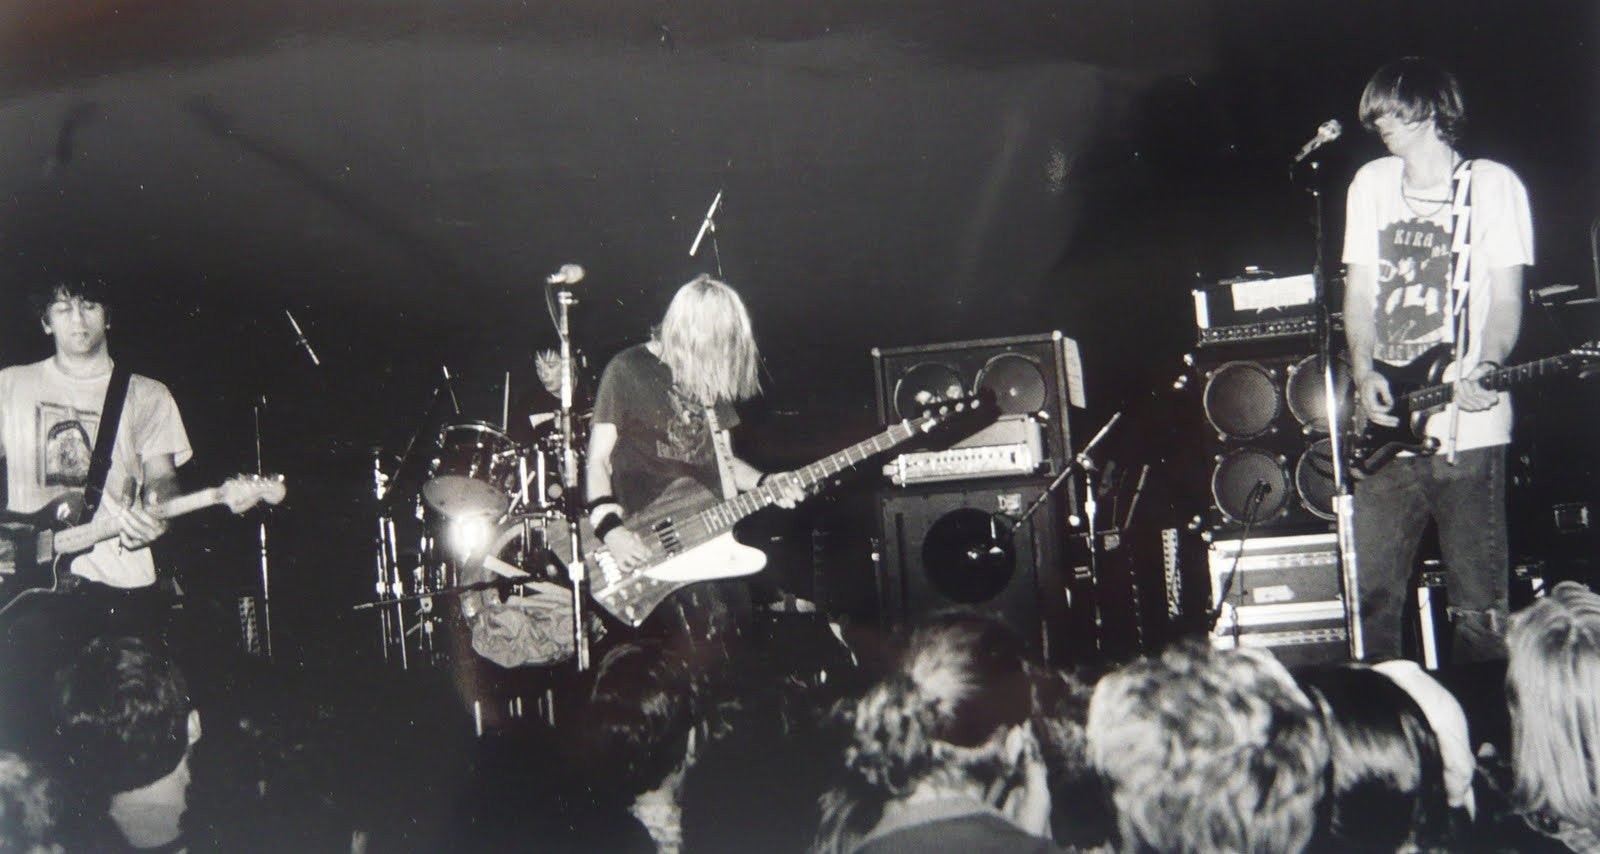 Sonic Youth live show from the 80s